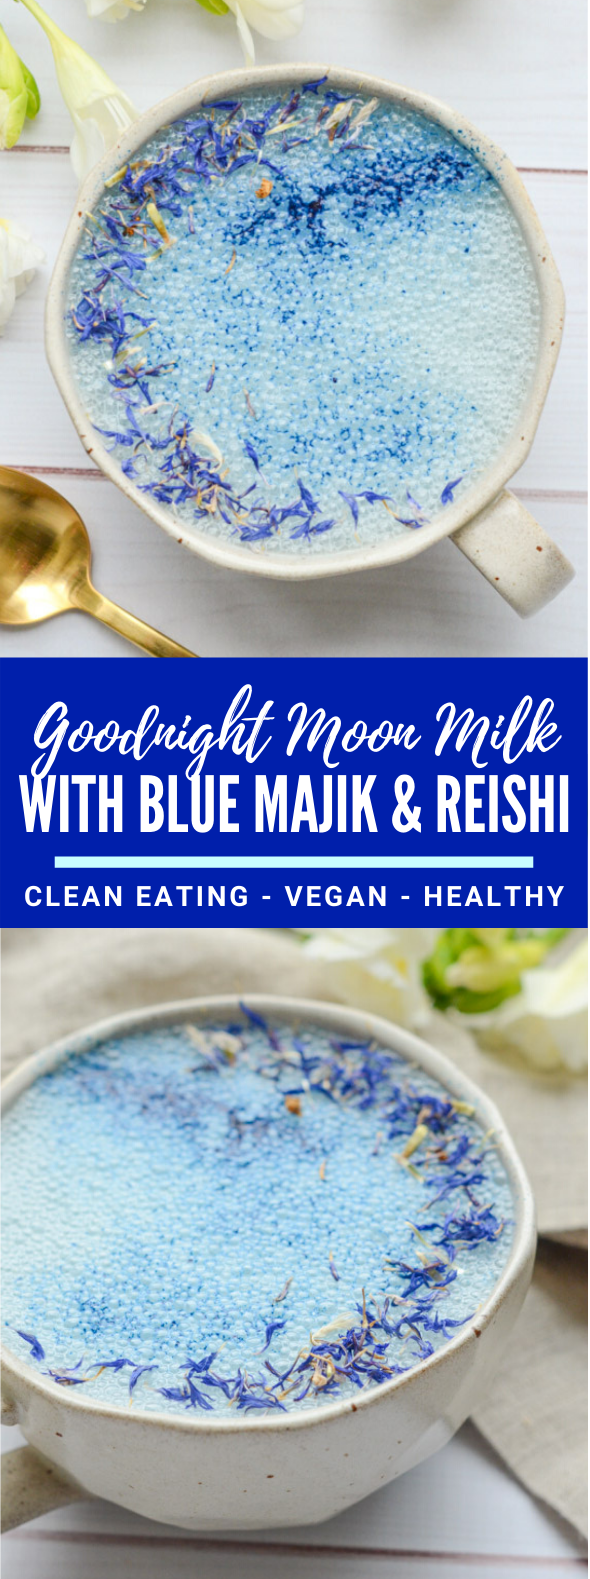 Goodnight Moon Milk Recipe with Blue Majik and Reishi #drinks #cleaneating